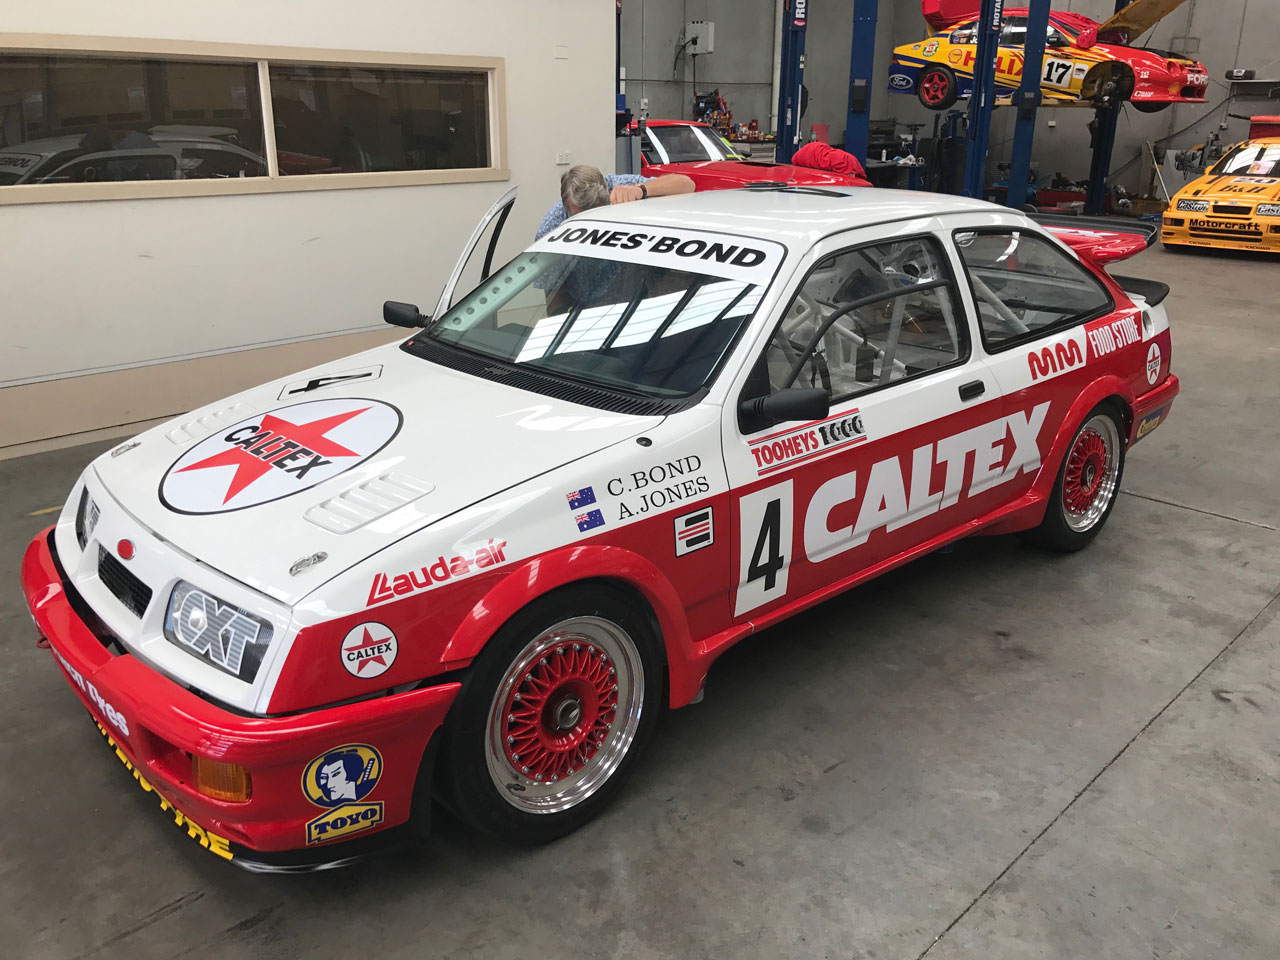 Colin Bond 1988 Caltex Sierra RS500